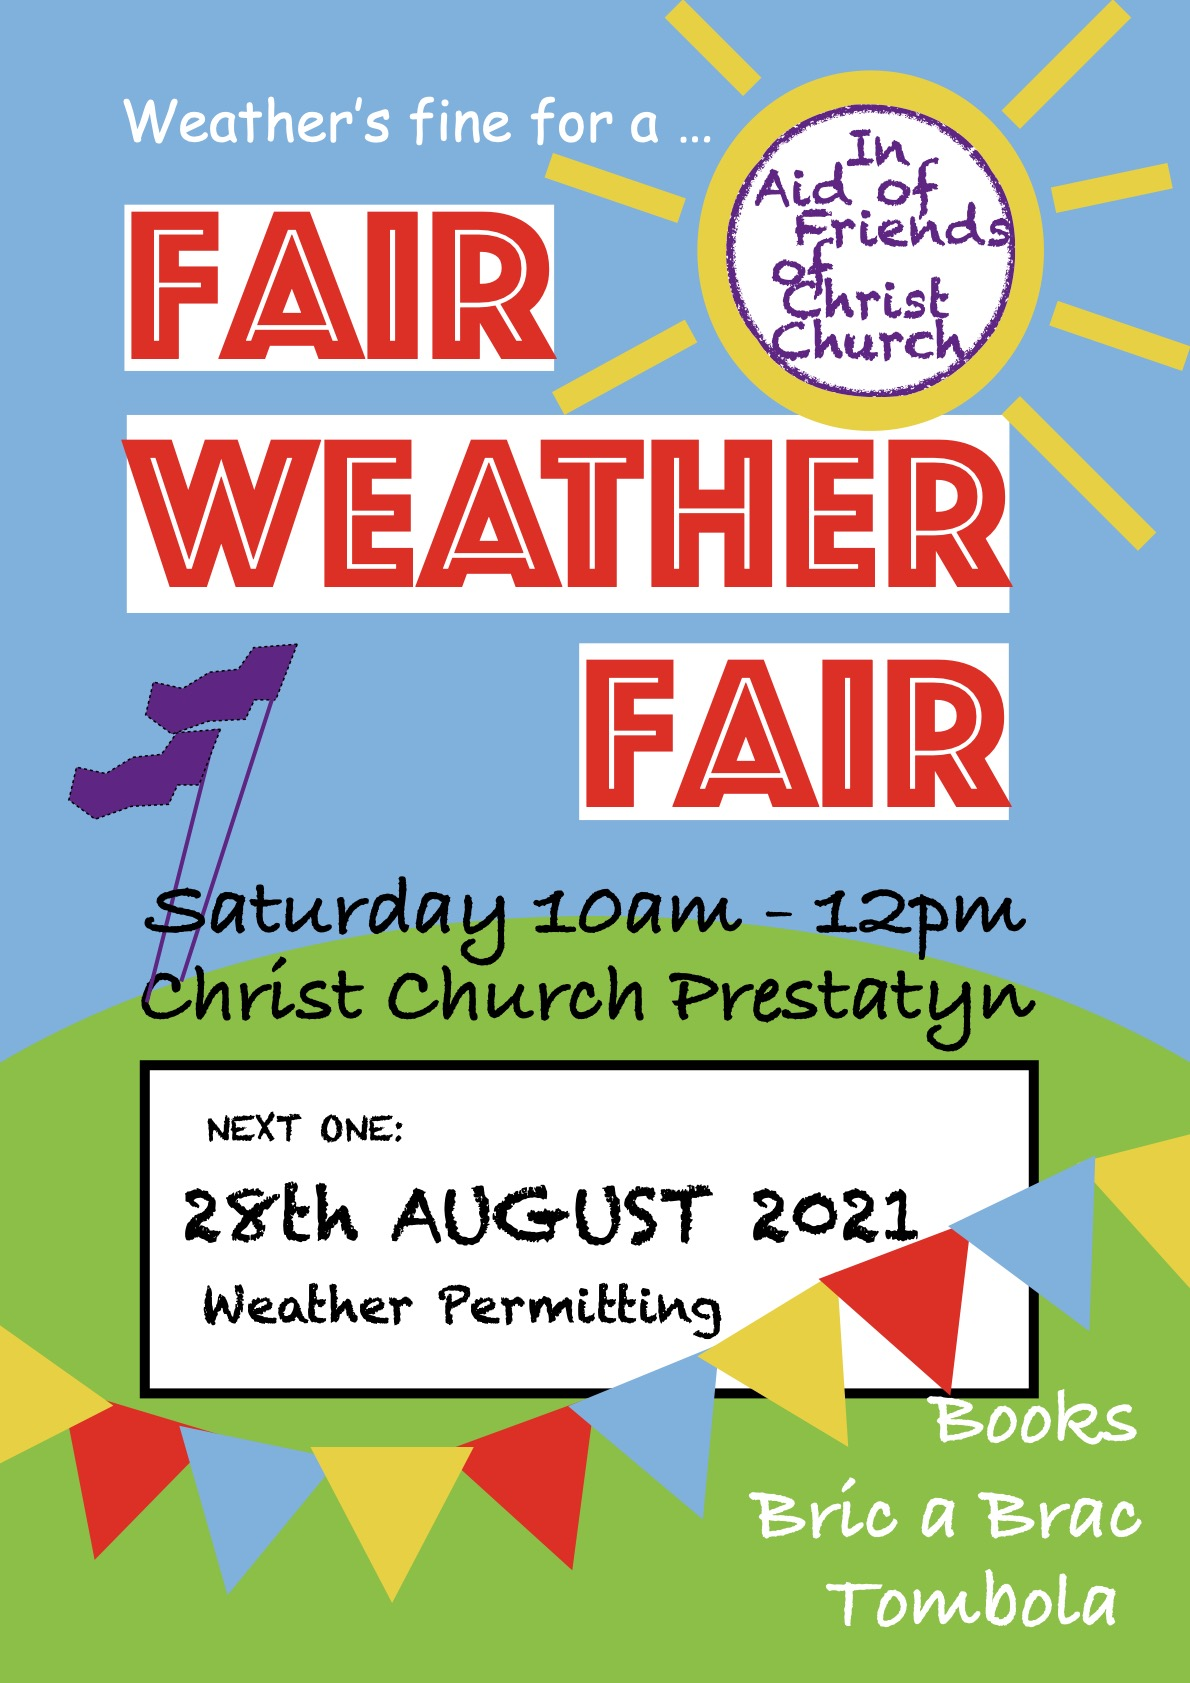 The Last Fair Weather Fair so let's make it the best. Sat 28th August from 10am - 1pm in the grounds of Christ Church and in aid of Friends of Christ Church.